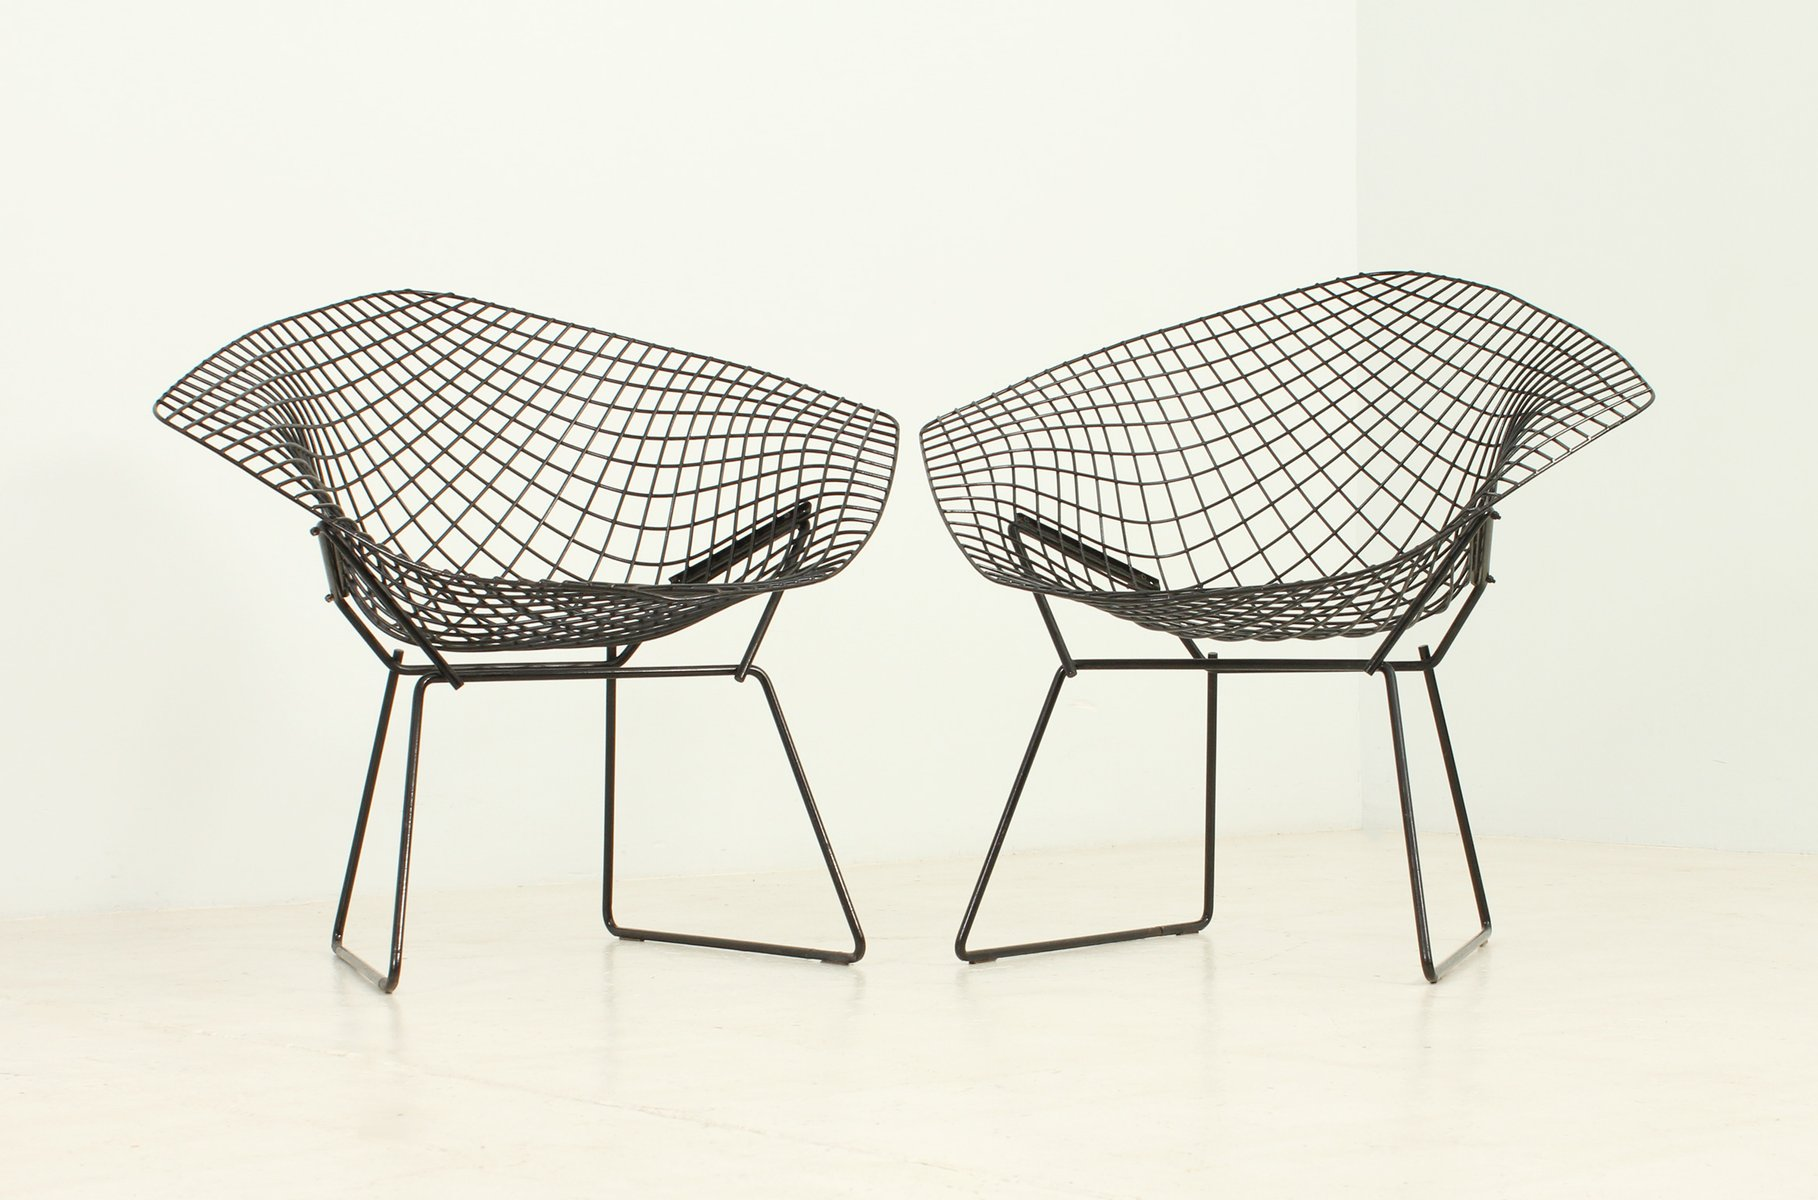 Black Diamond Chairs by Harry Bertoia for Knoll 1950s Set of 2